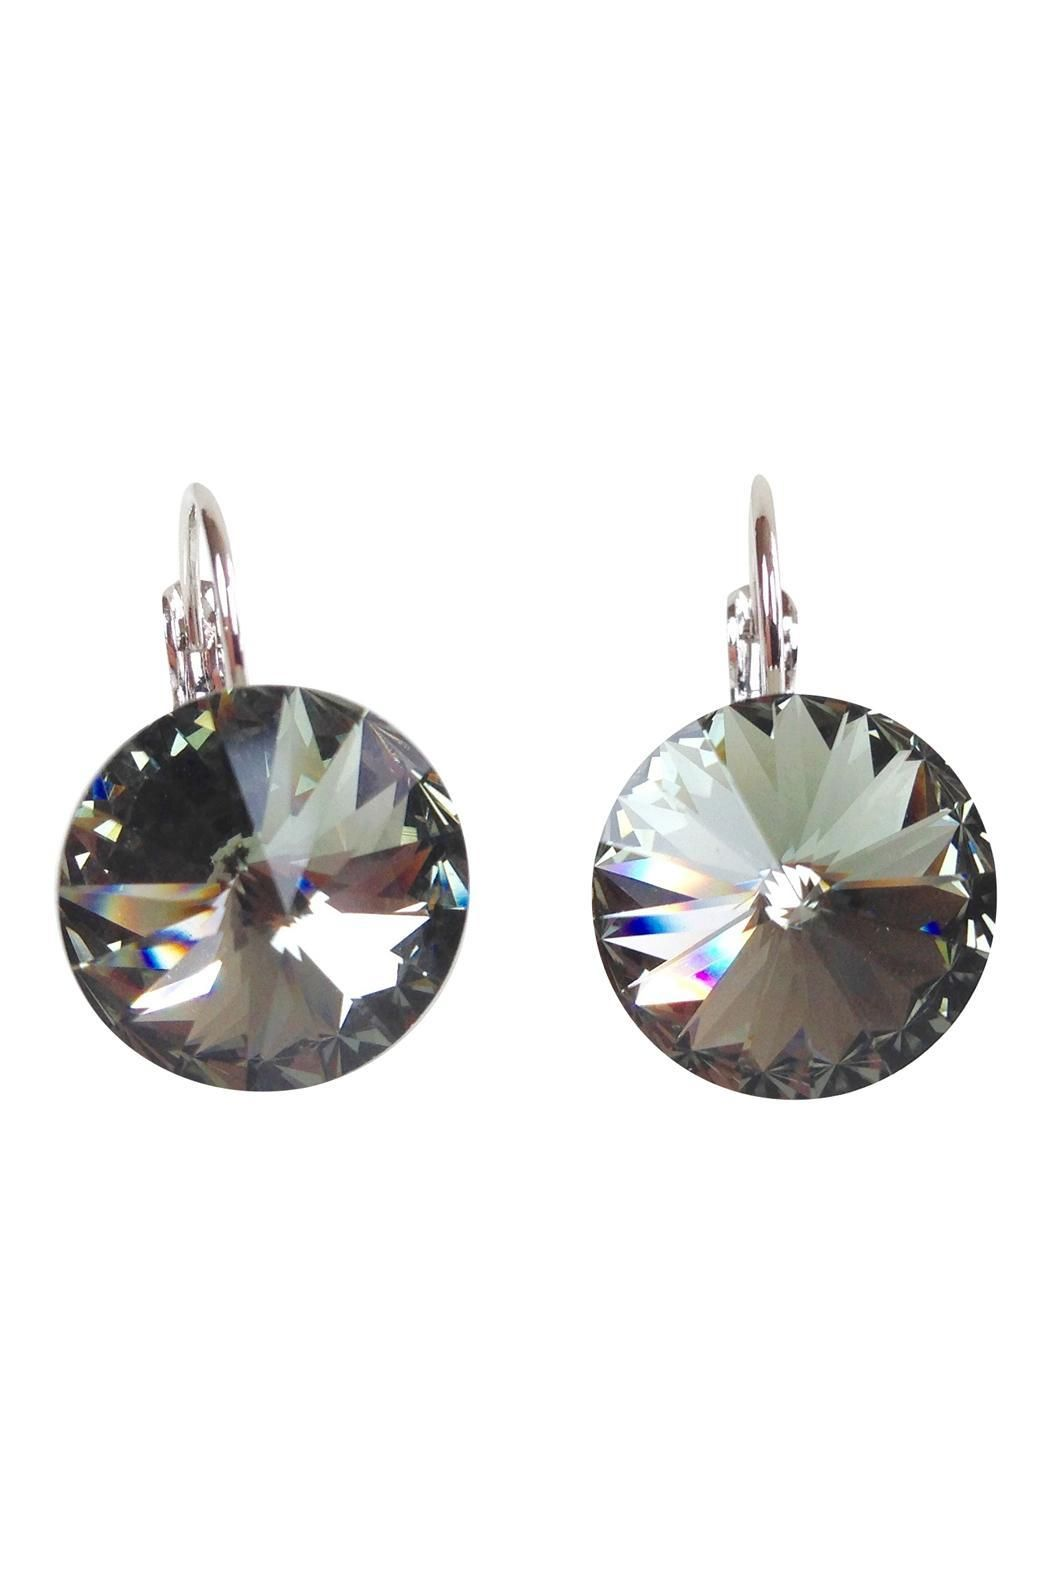 16f8b3958 Glistening smoke gray Swarovski Crystal Earrings set with locking french  hooks. These brilliant stones are 15mm in size, which is a little smaller  than a ...